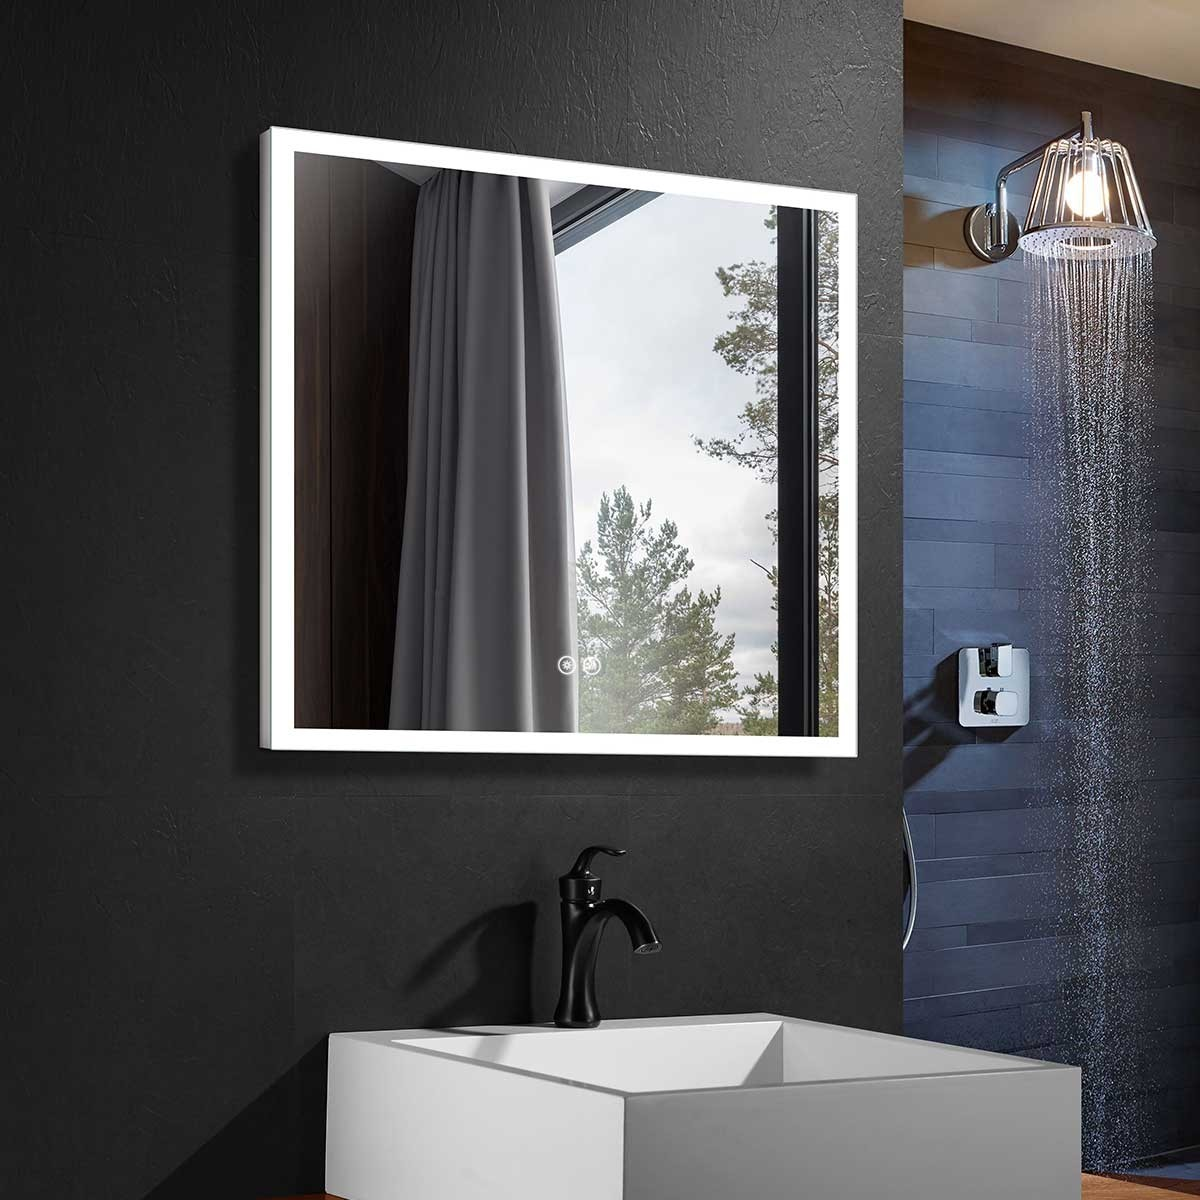 DECORAPORT 36 x 36 Inch LED Bathroom Mirror with Touch Button, Anti Fog, Dimmable (D112-3636)